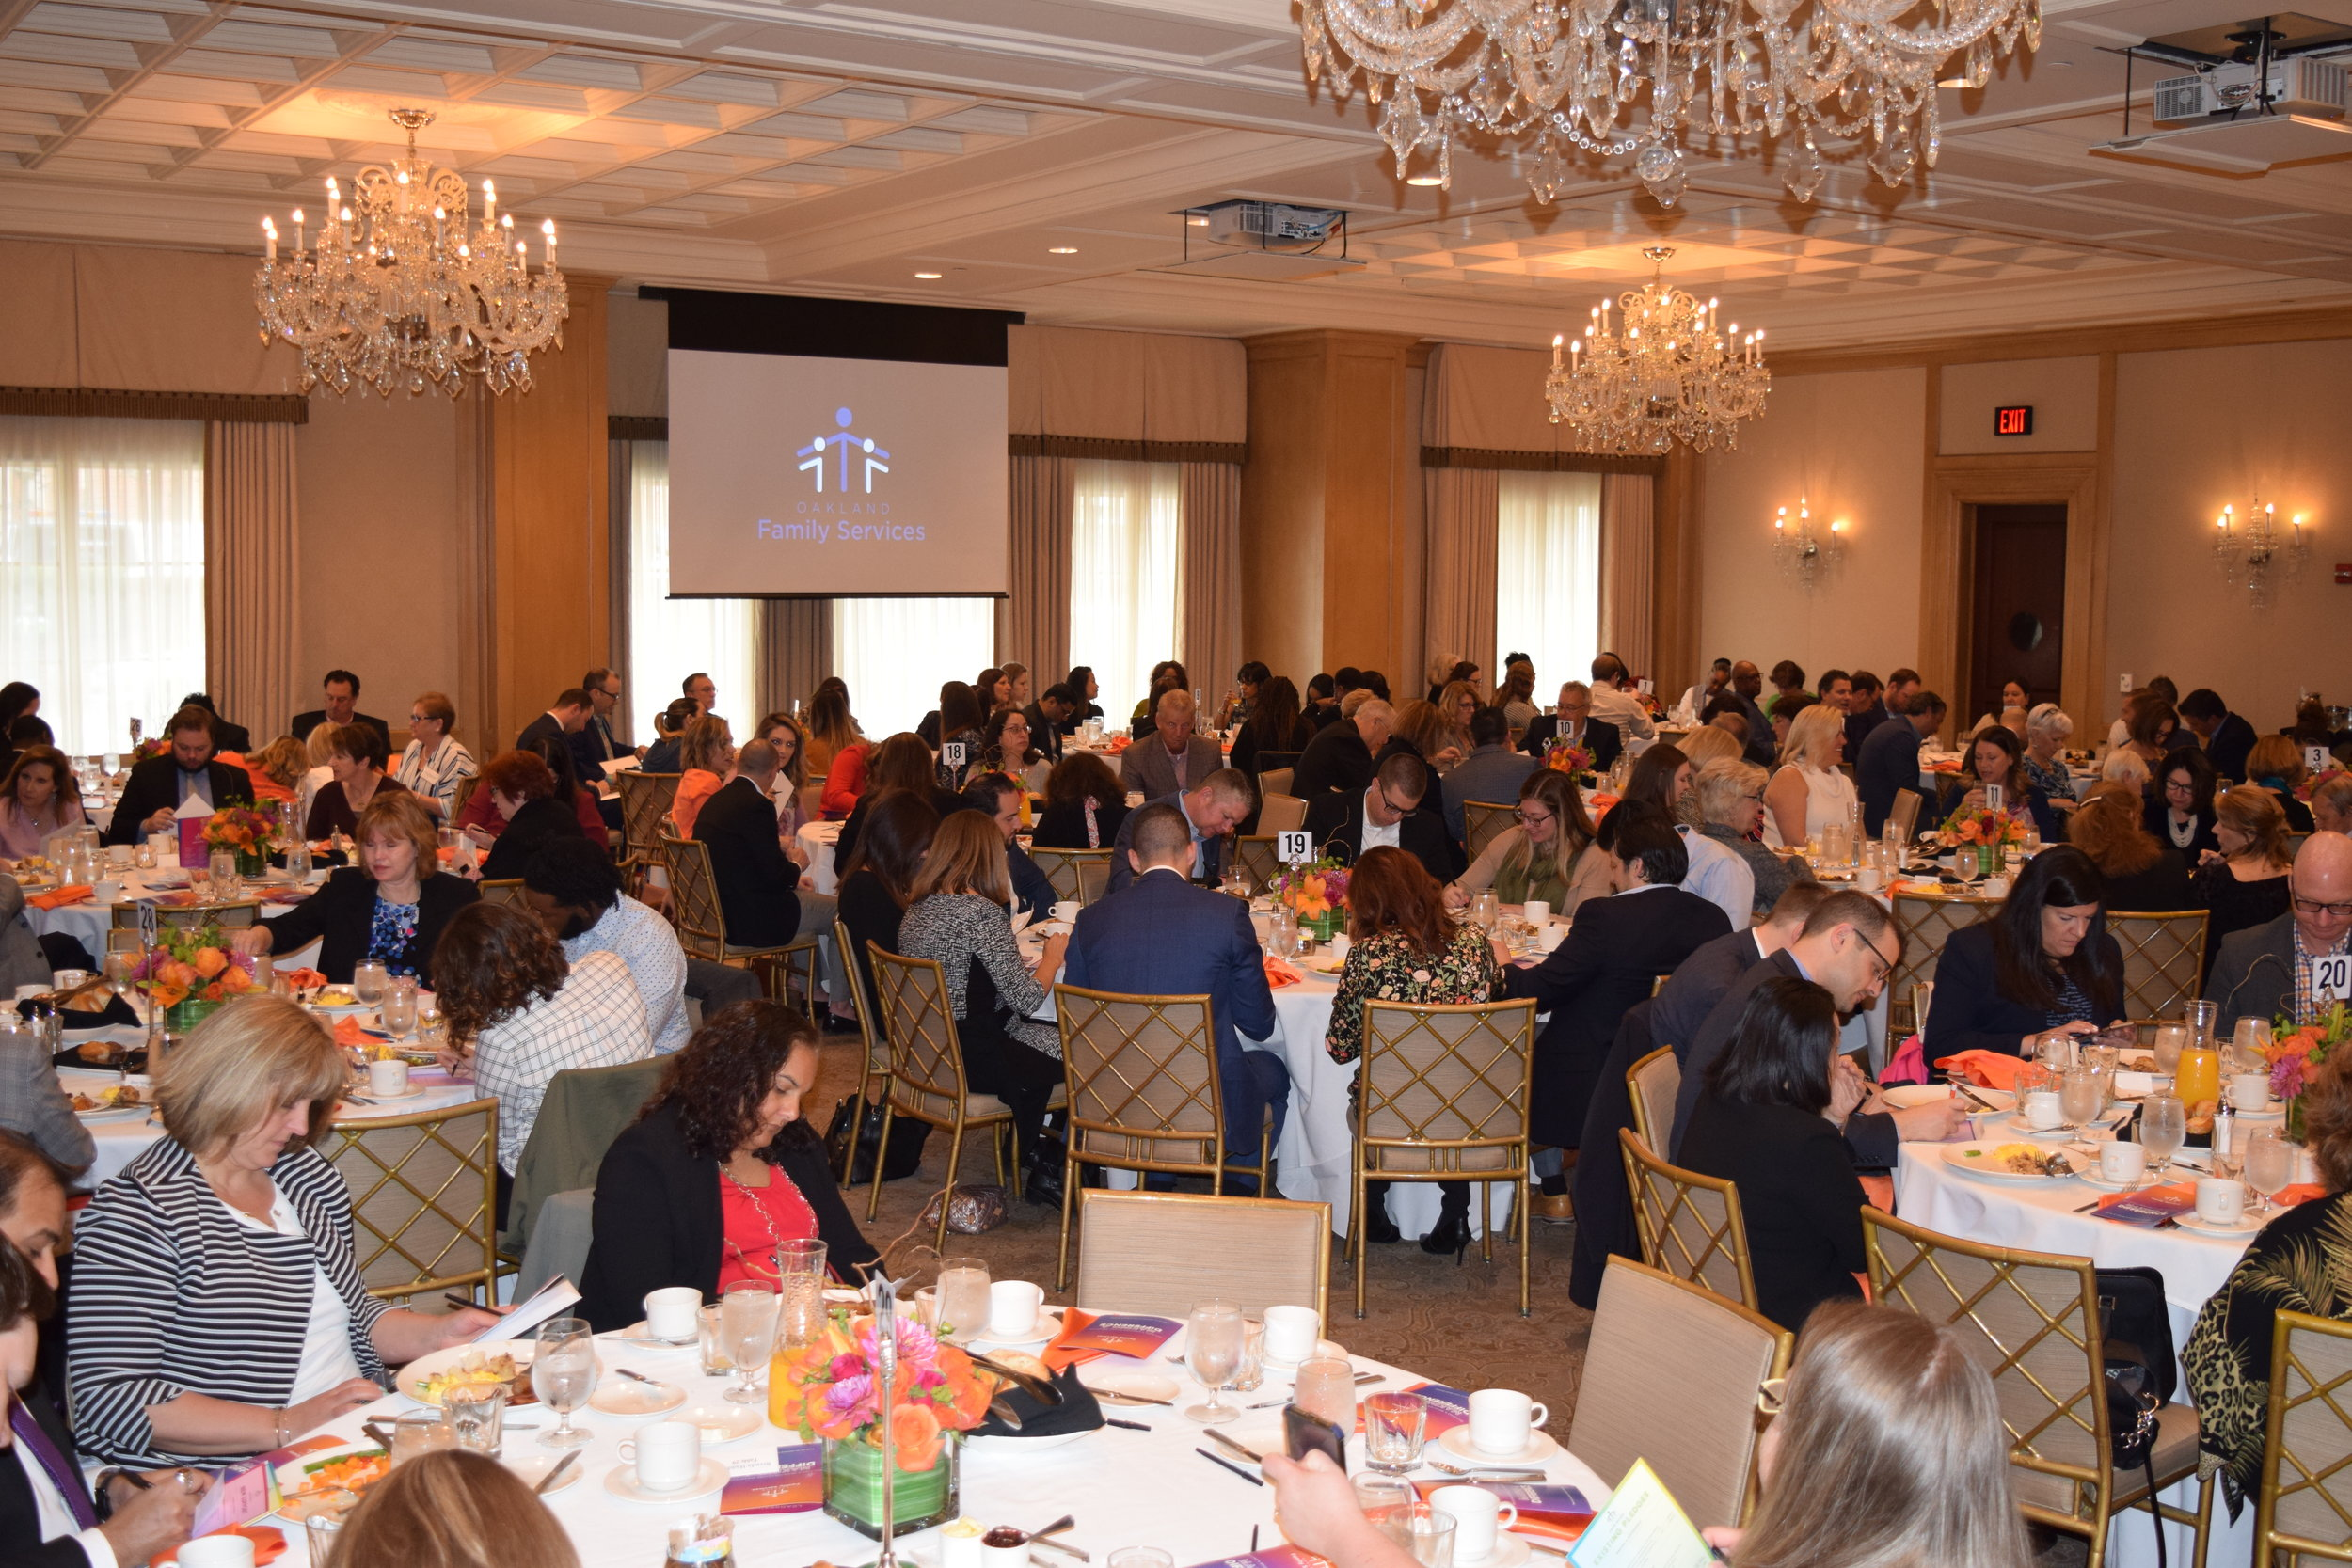 More than 300 people attended the Building a Brighter Future Breakfast.